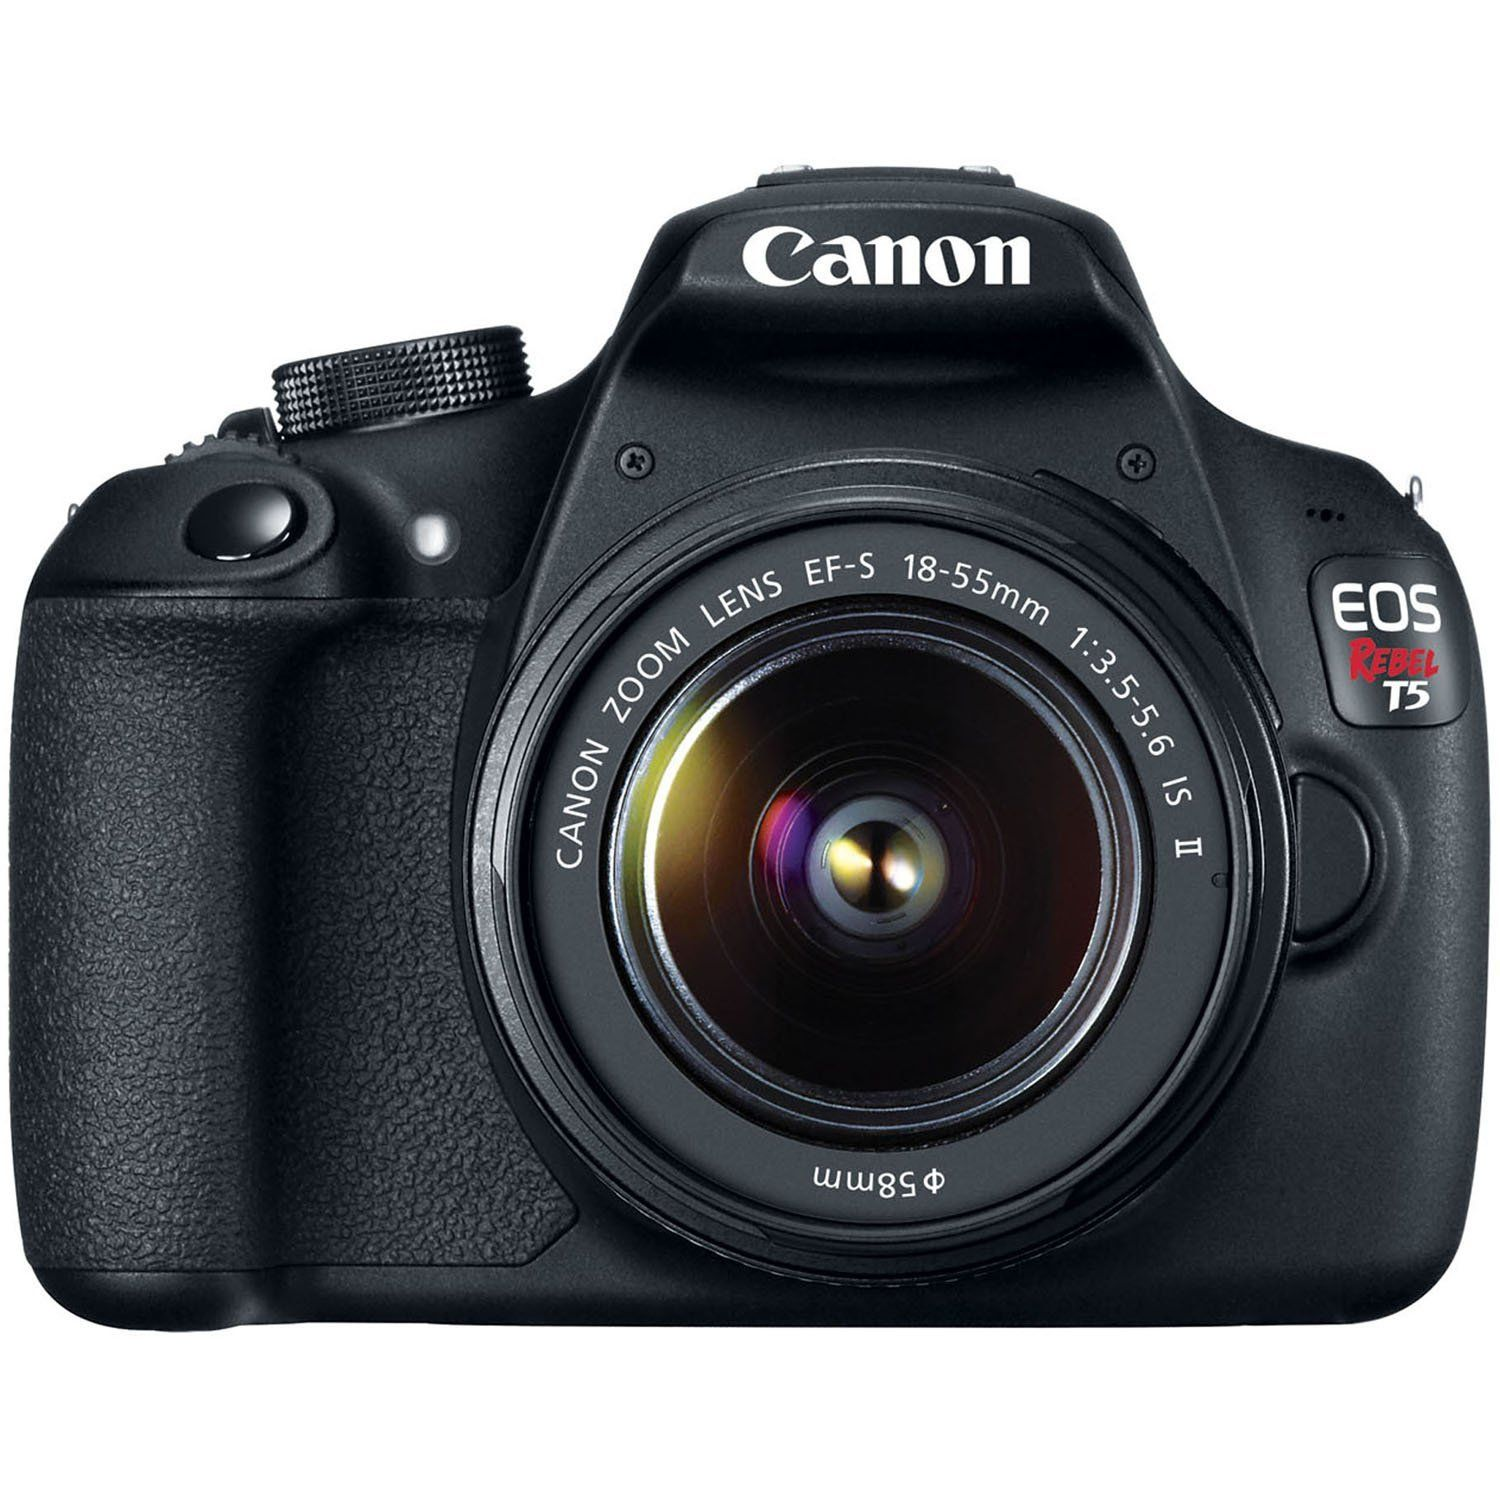 The Best Gifts for 18 Year Old Girls Camera Store, Dslr Cameras, Canon Dslr